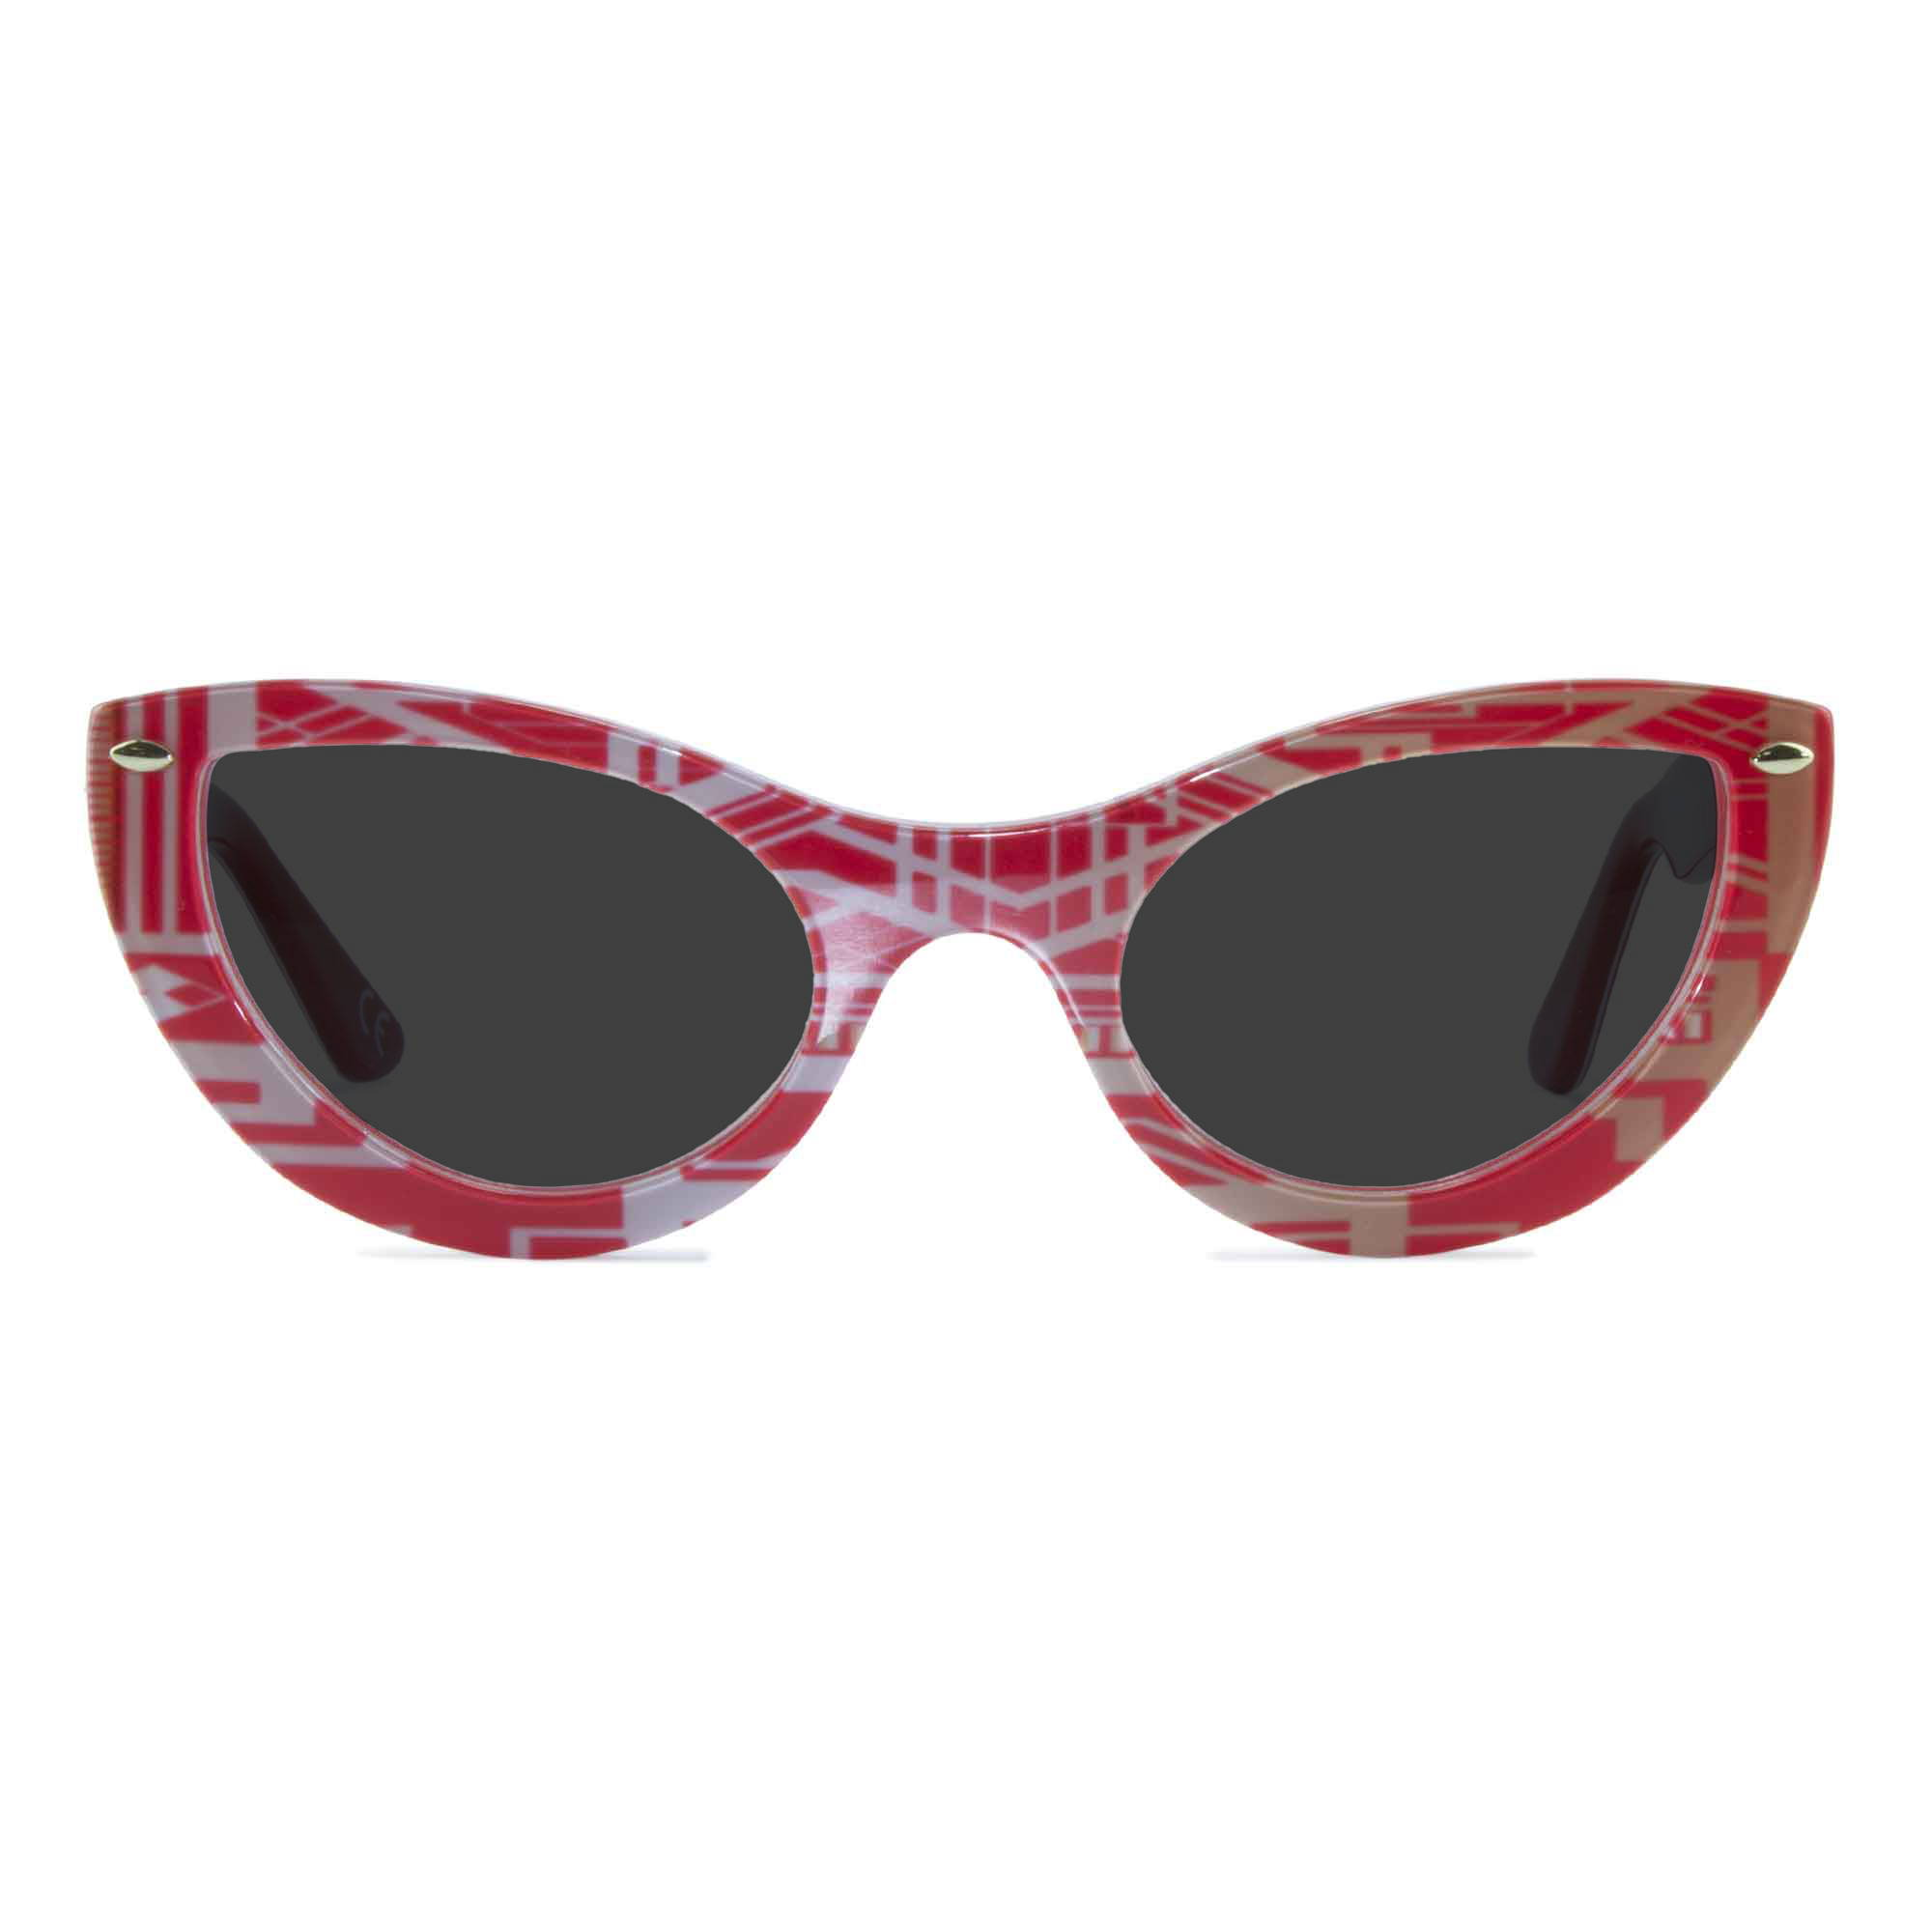 Joiuss gatsby red & gold cat eye sunglasses